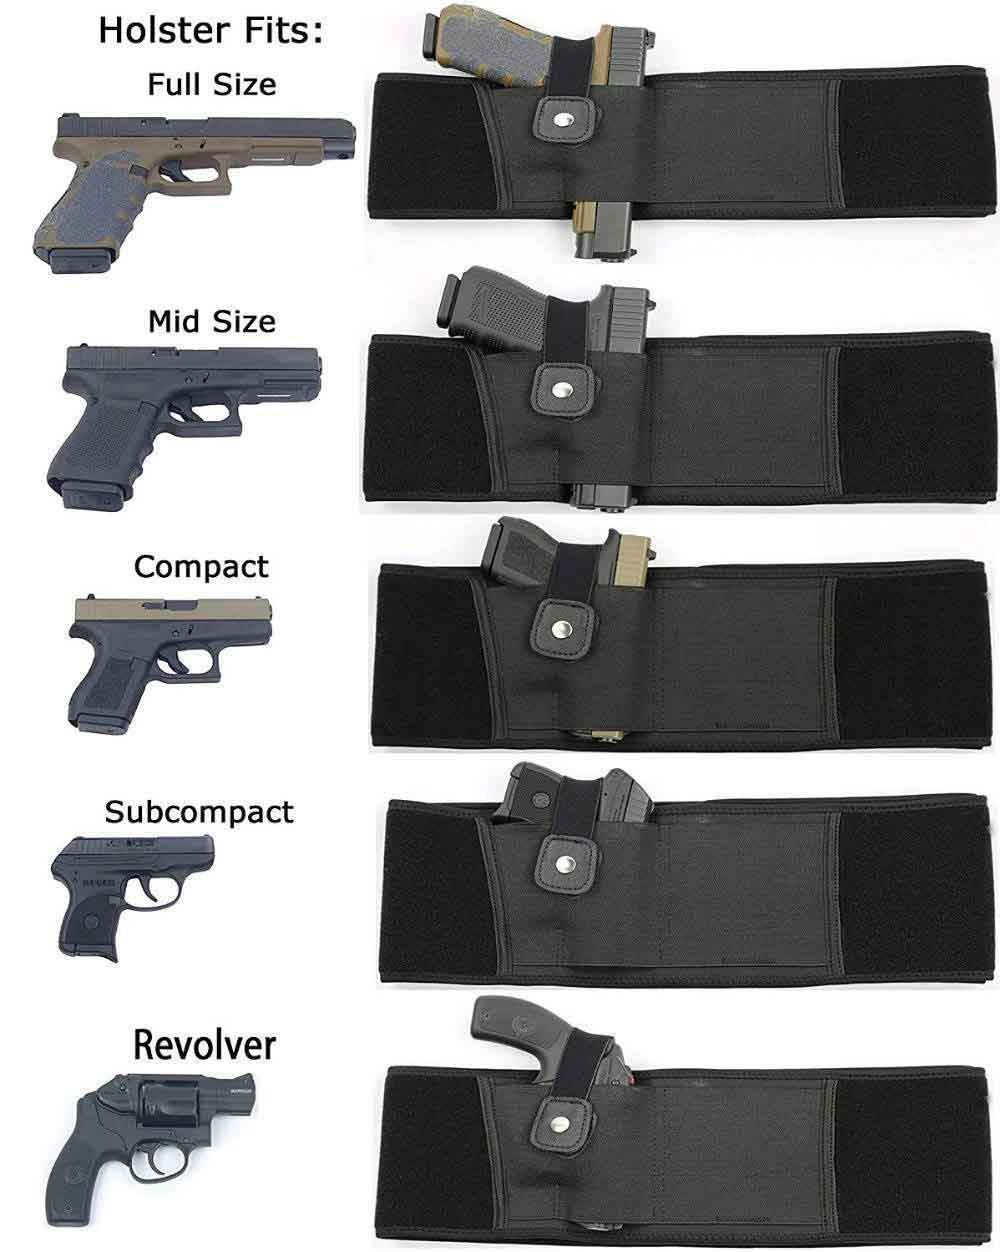 belly band holster fit all type of pistol such as full size pistol, mid size, compact, sub compact, revolver pistols.